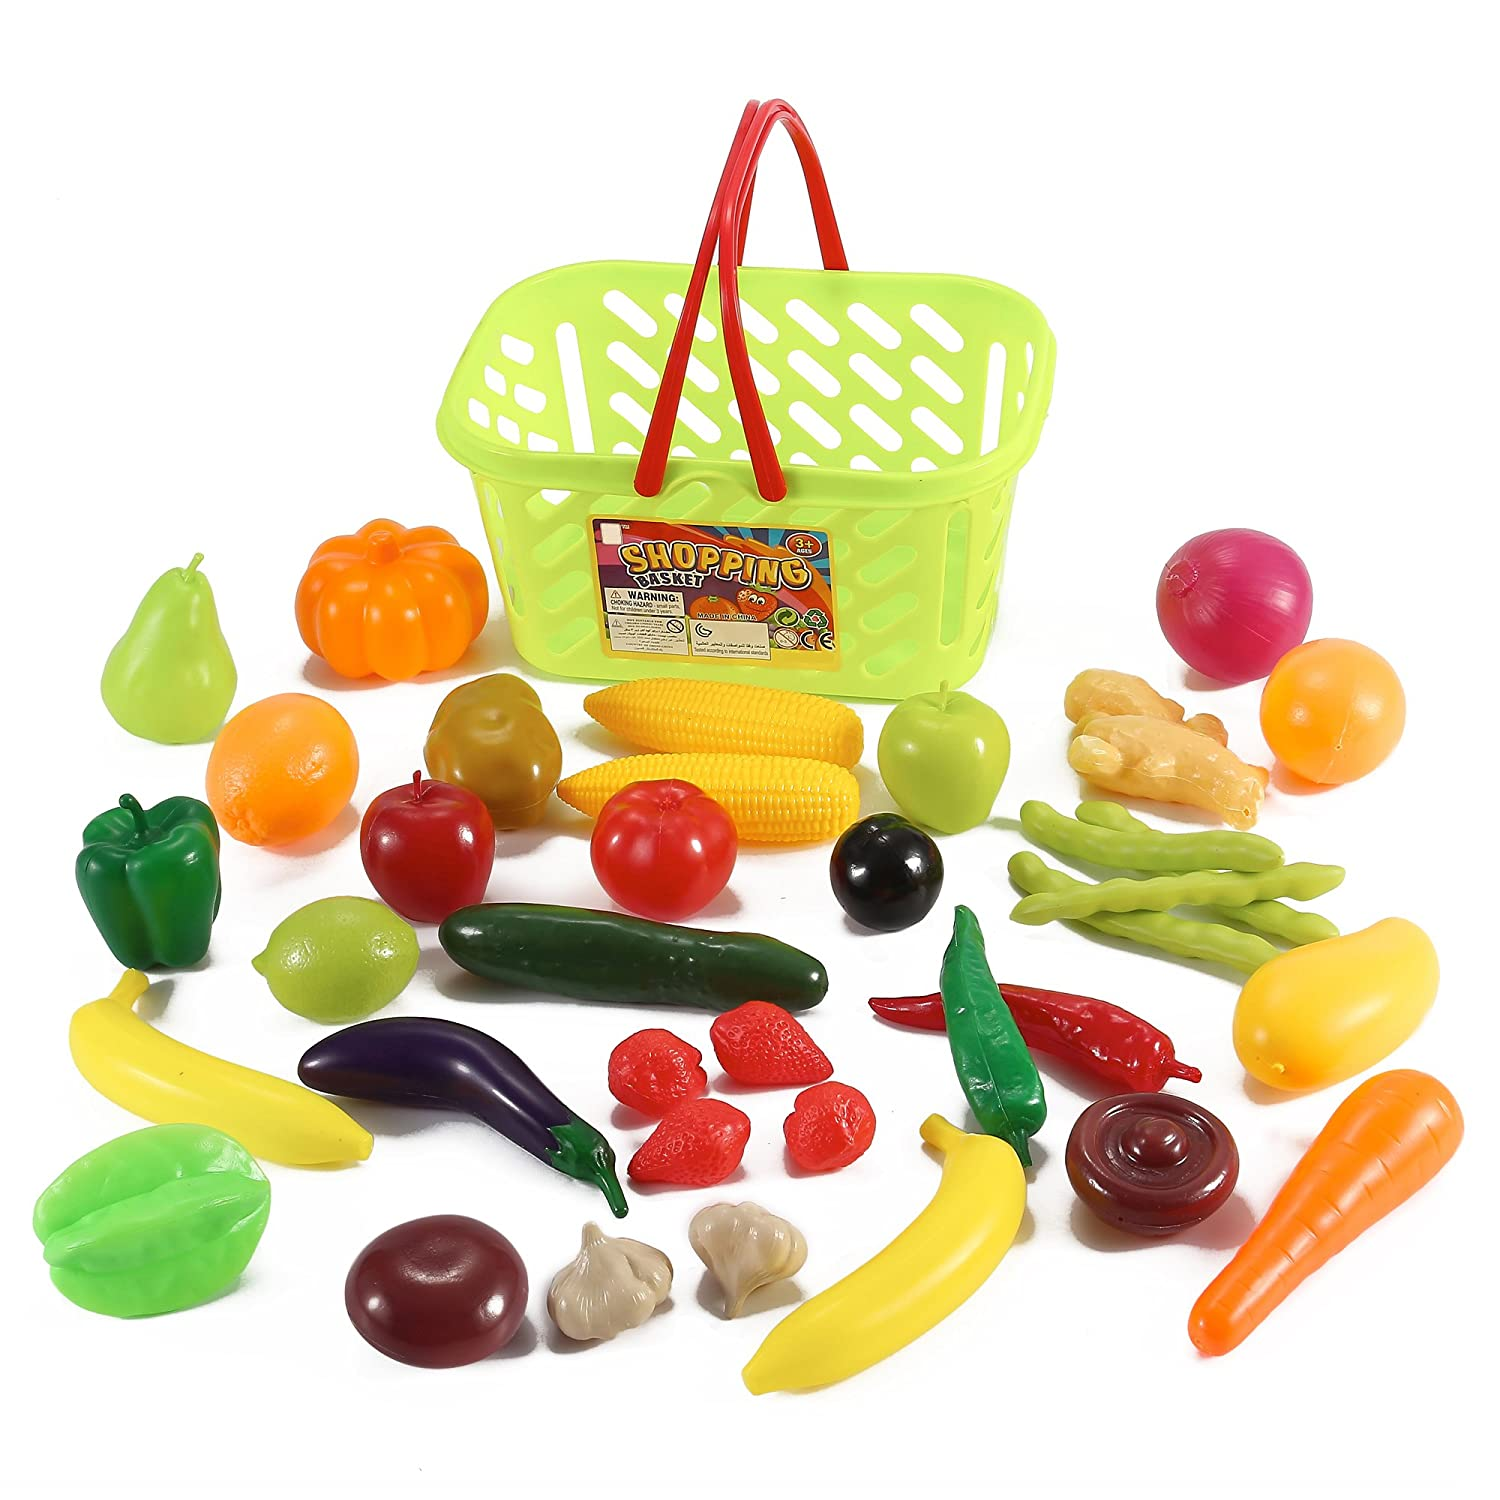 Amazon Fruits and Ve ables Shopping Basket Grocery Play